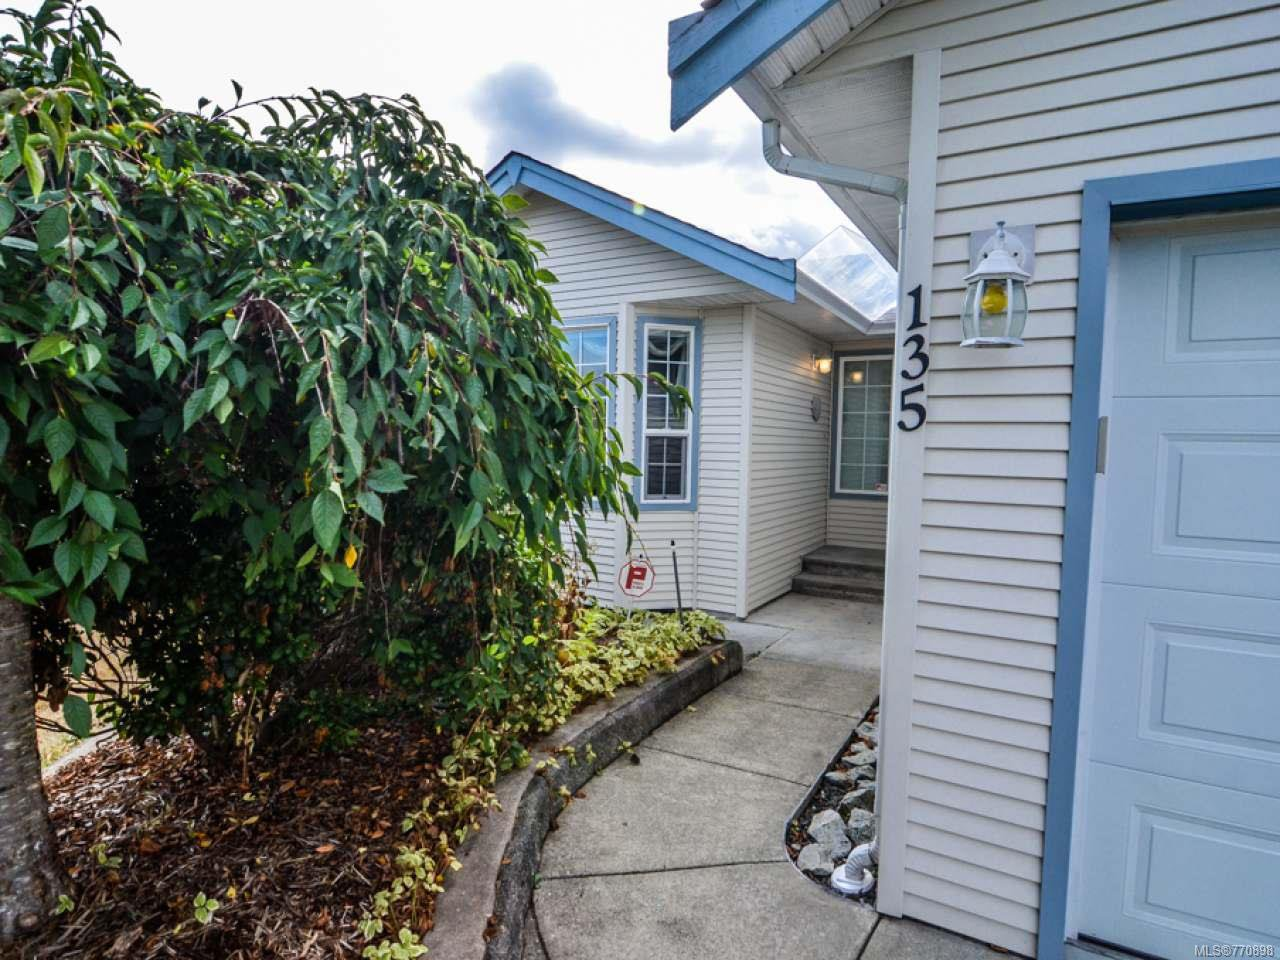 Photo 3: Photos: 135 Colorado Dr in CAMPBELL RIVER: CR Willow Point House for sale (Campbell River)  : MLS®# 770898